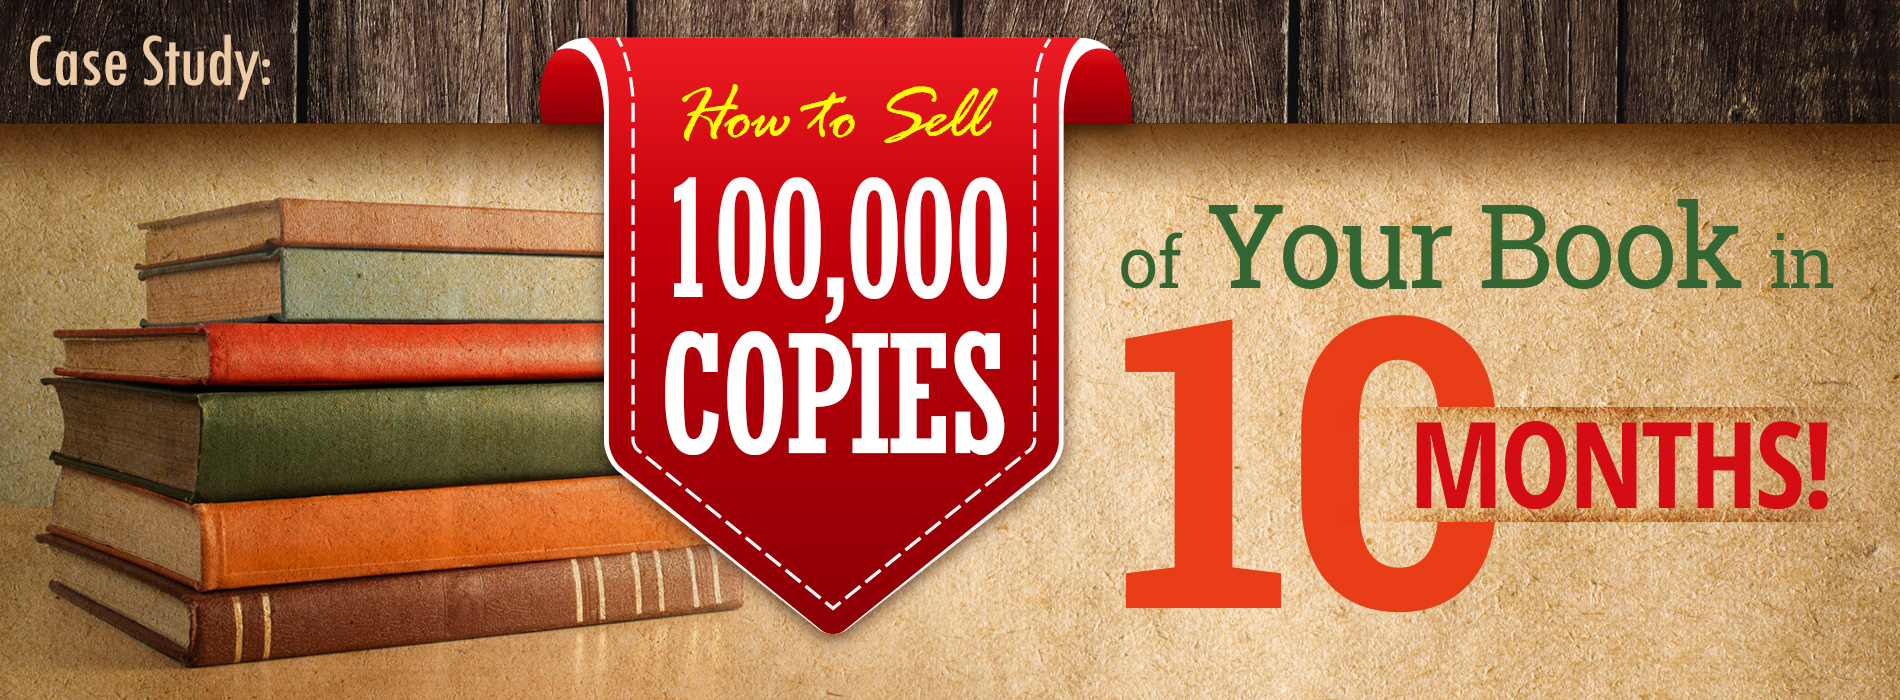 how-to-sell-100000-copies